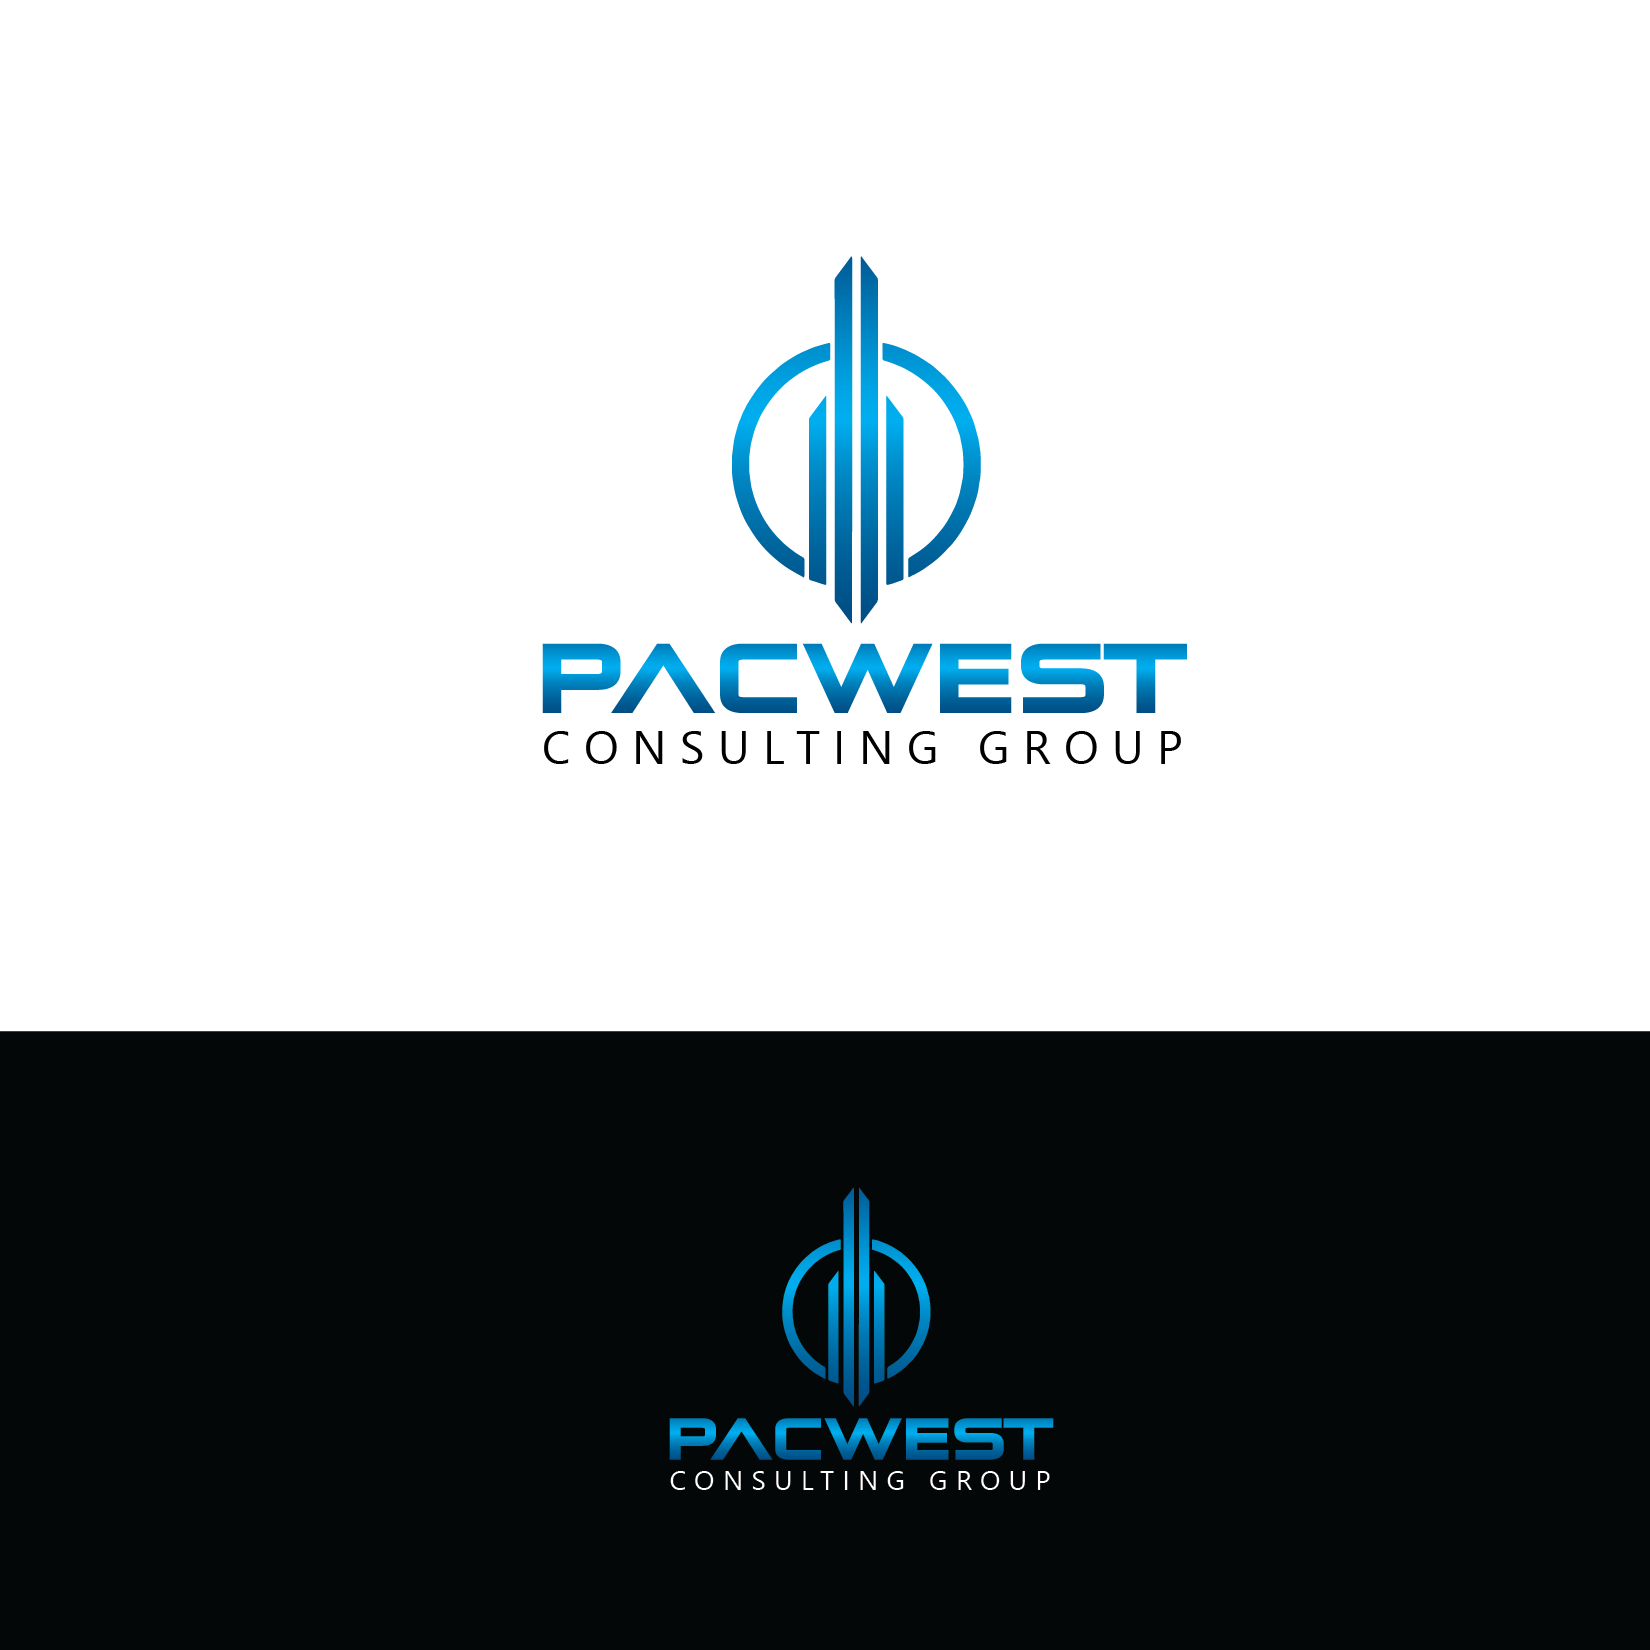 Logo Design by Private User - Entry No. 86 in the Logo Design Contest Imaginative Logo Design for Pacwest Consulting Group.